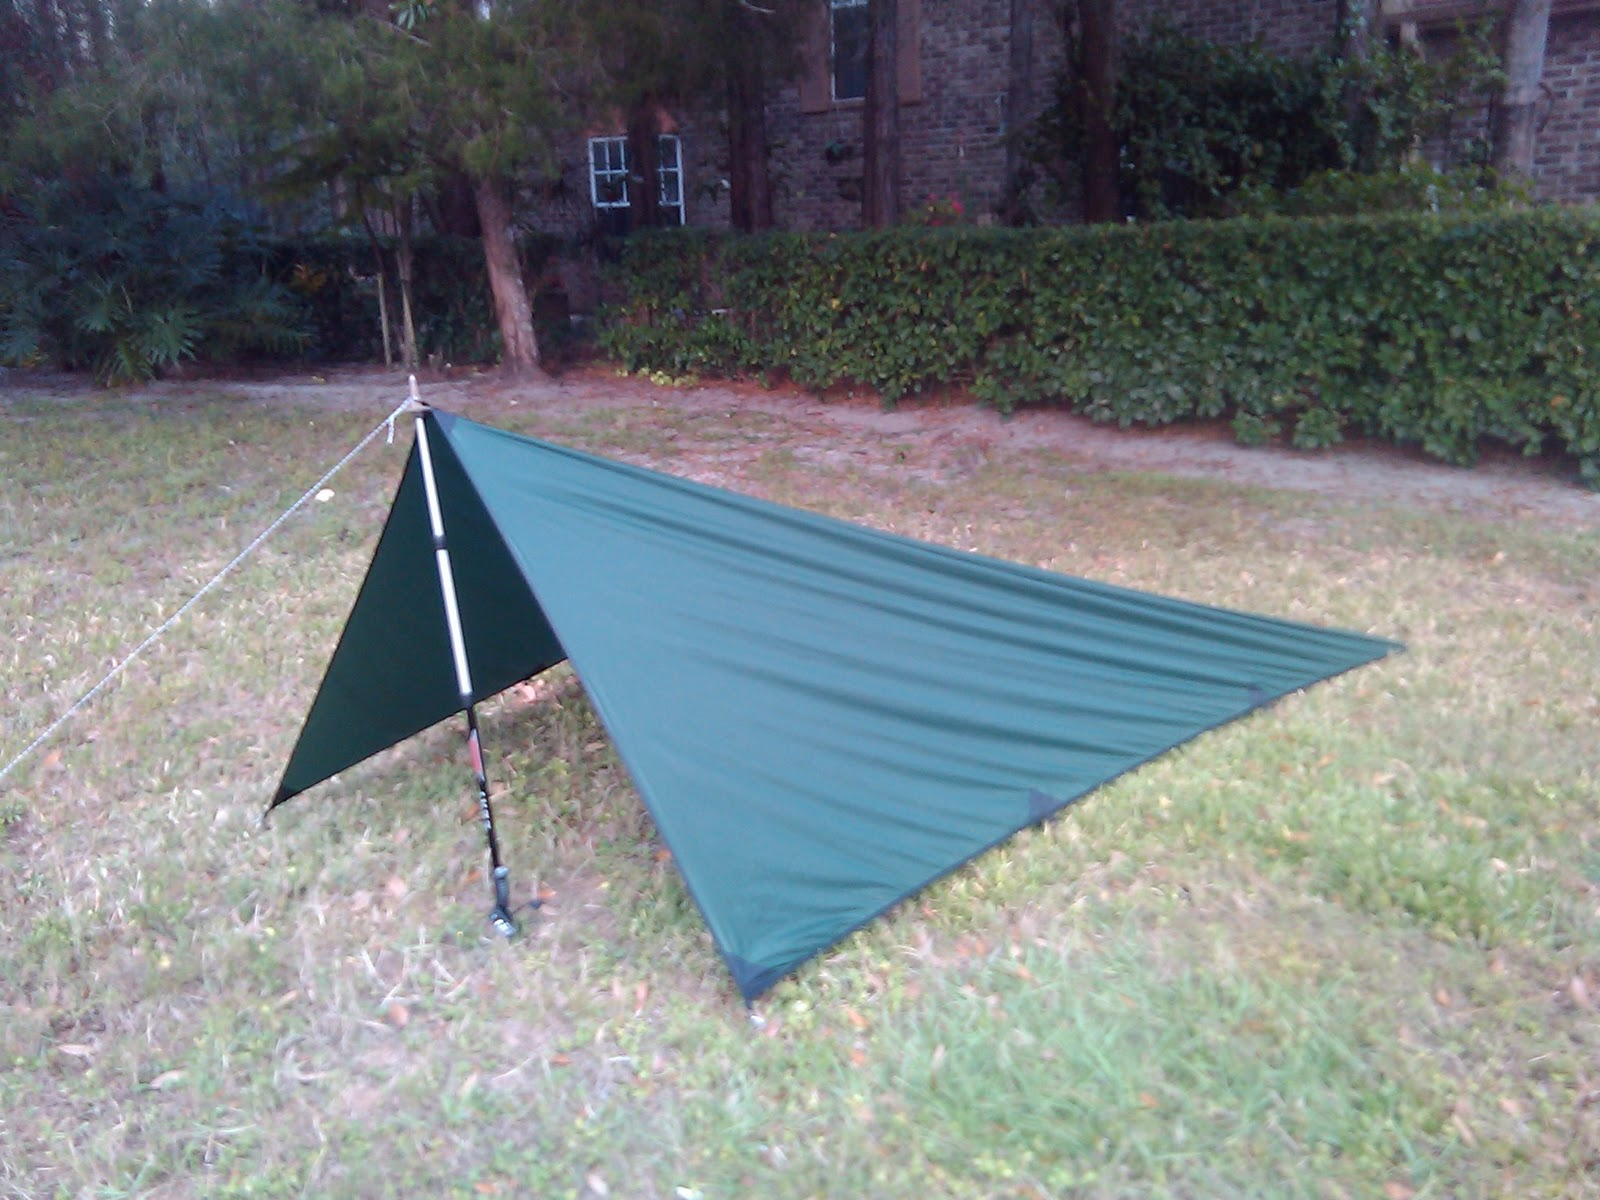 Iu0027ve also decided to ditch my tent. After reading everything I can find about them I made up my mind on an 8x10 Outdoor Equipment Supplier silnylon tarp. ... : silnylon tarp tent - memphite.com